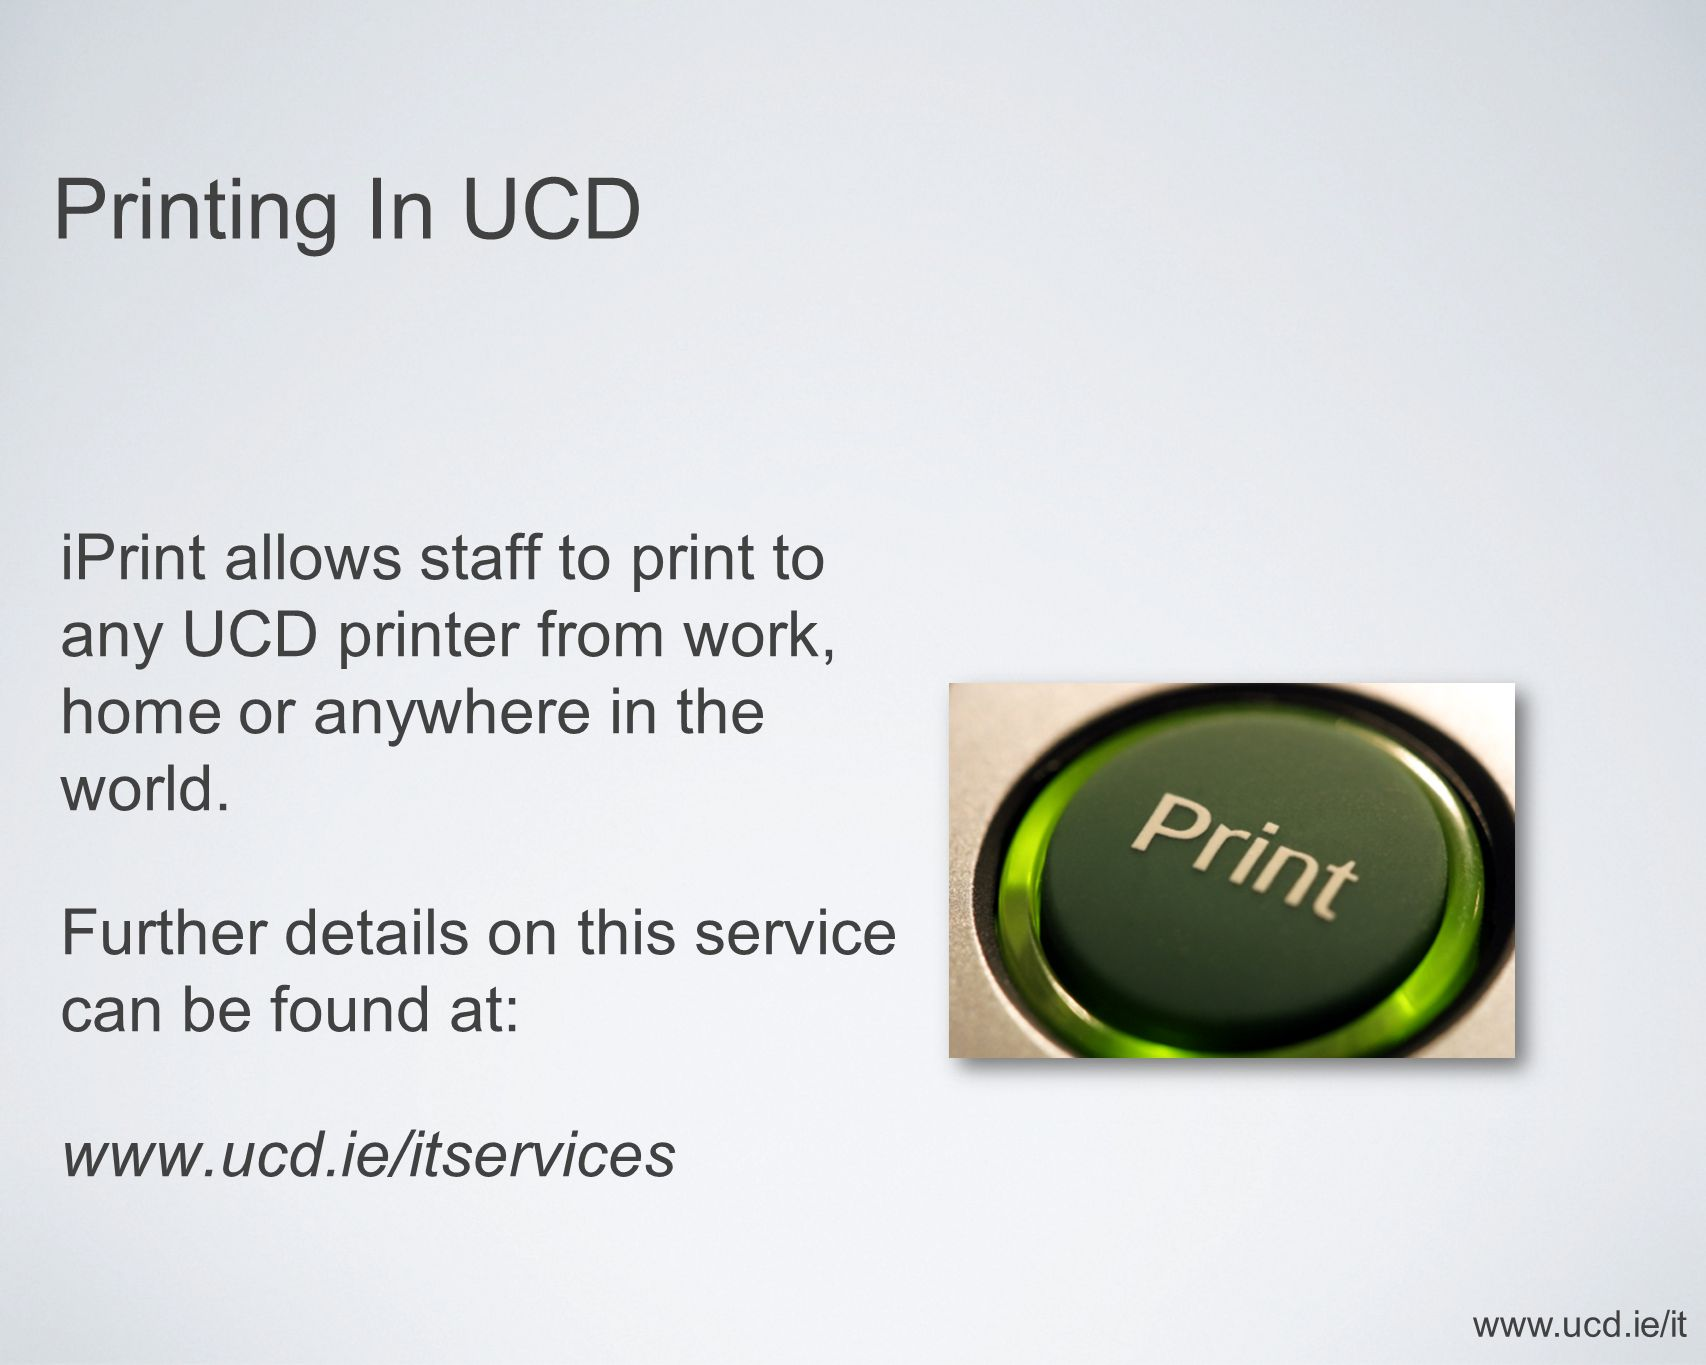 Printing In UCD iPrint allows staff to print to any UCD printer from work, home or anywhere in the world.